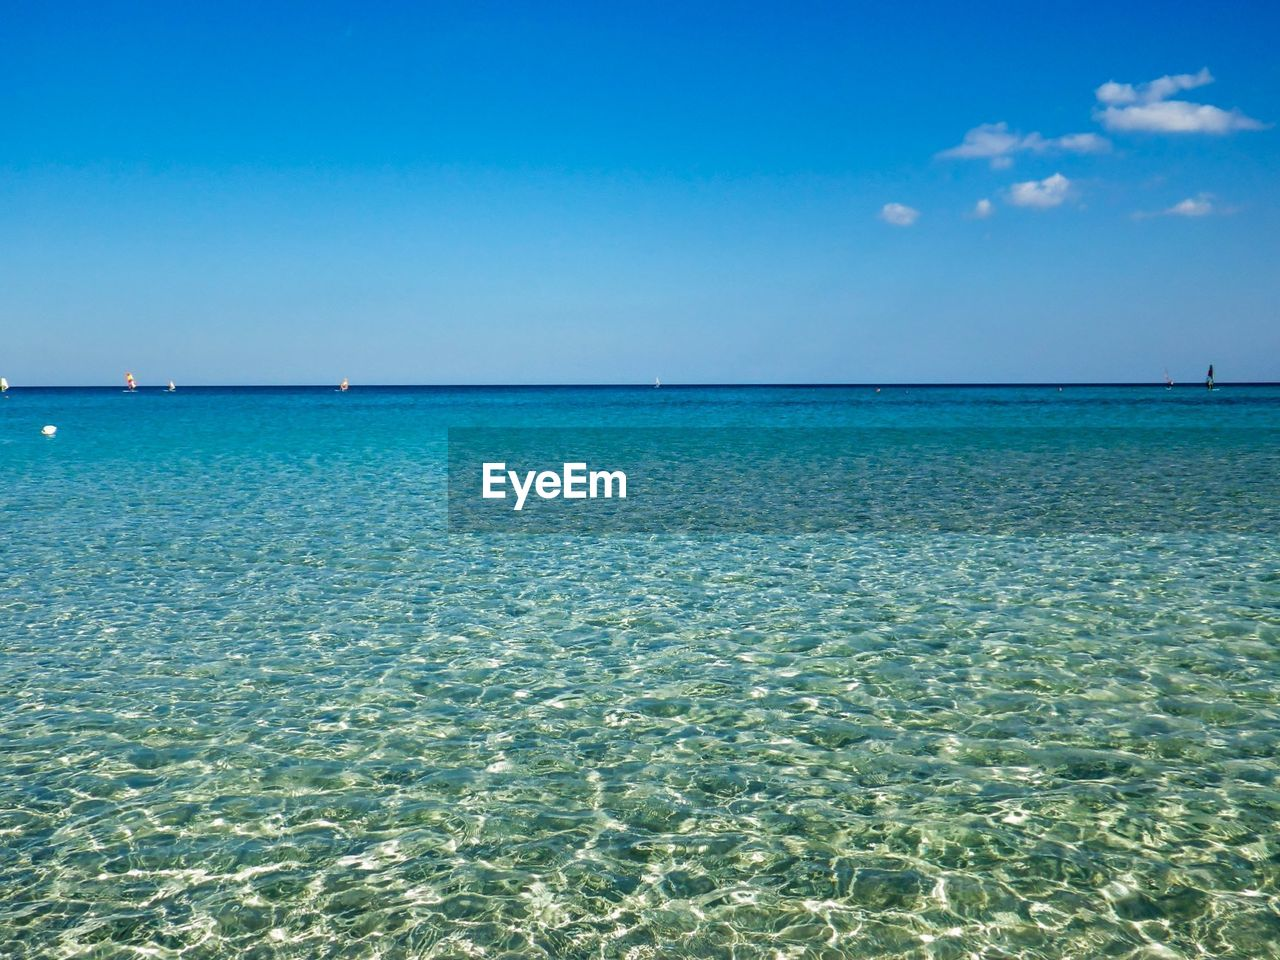 sea, water, sky, beauty in nature, horizon over water, scenics - nature, horizon, blue, tranquility, tranquil scene, nature, day, land, no people, waterfront, clear sky, beach, idyllic, rippled, outdoors, turquoise colored, shallow